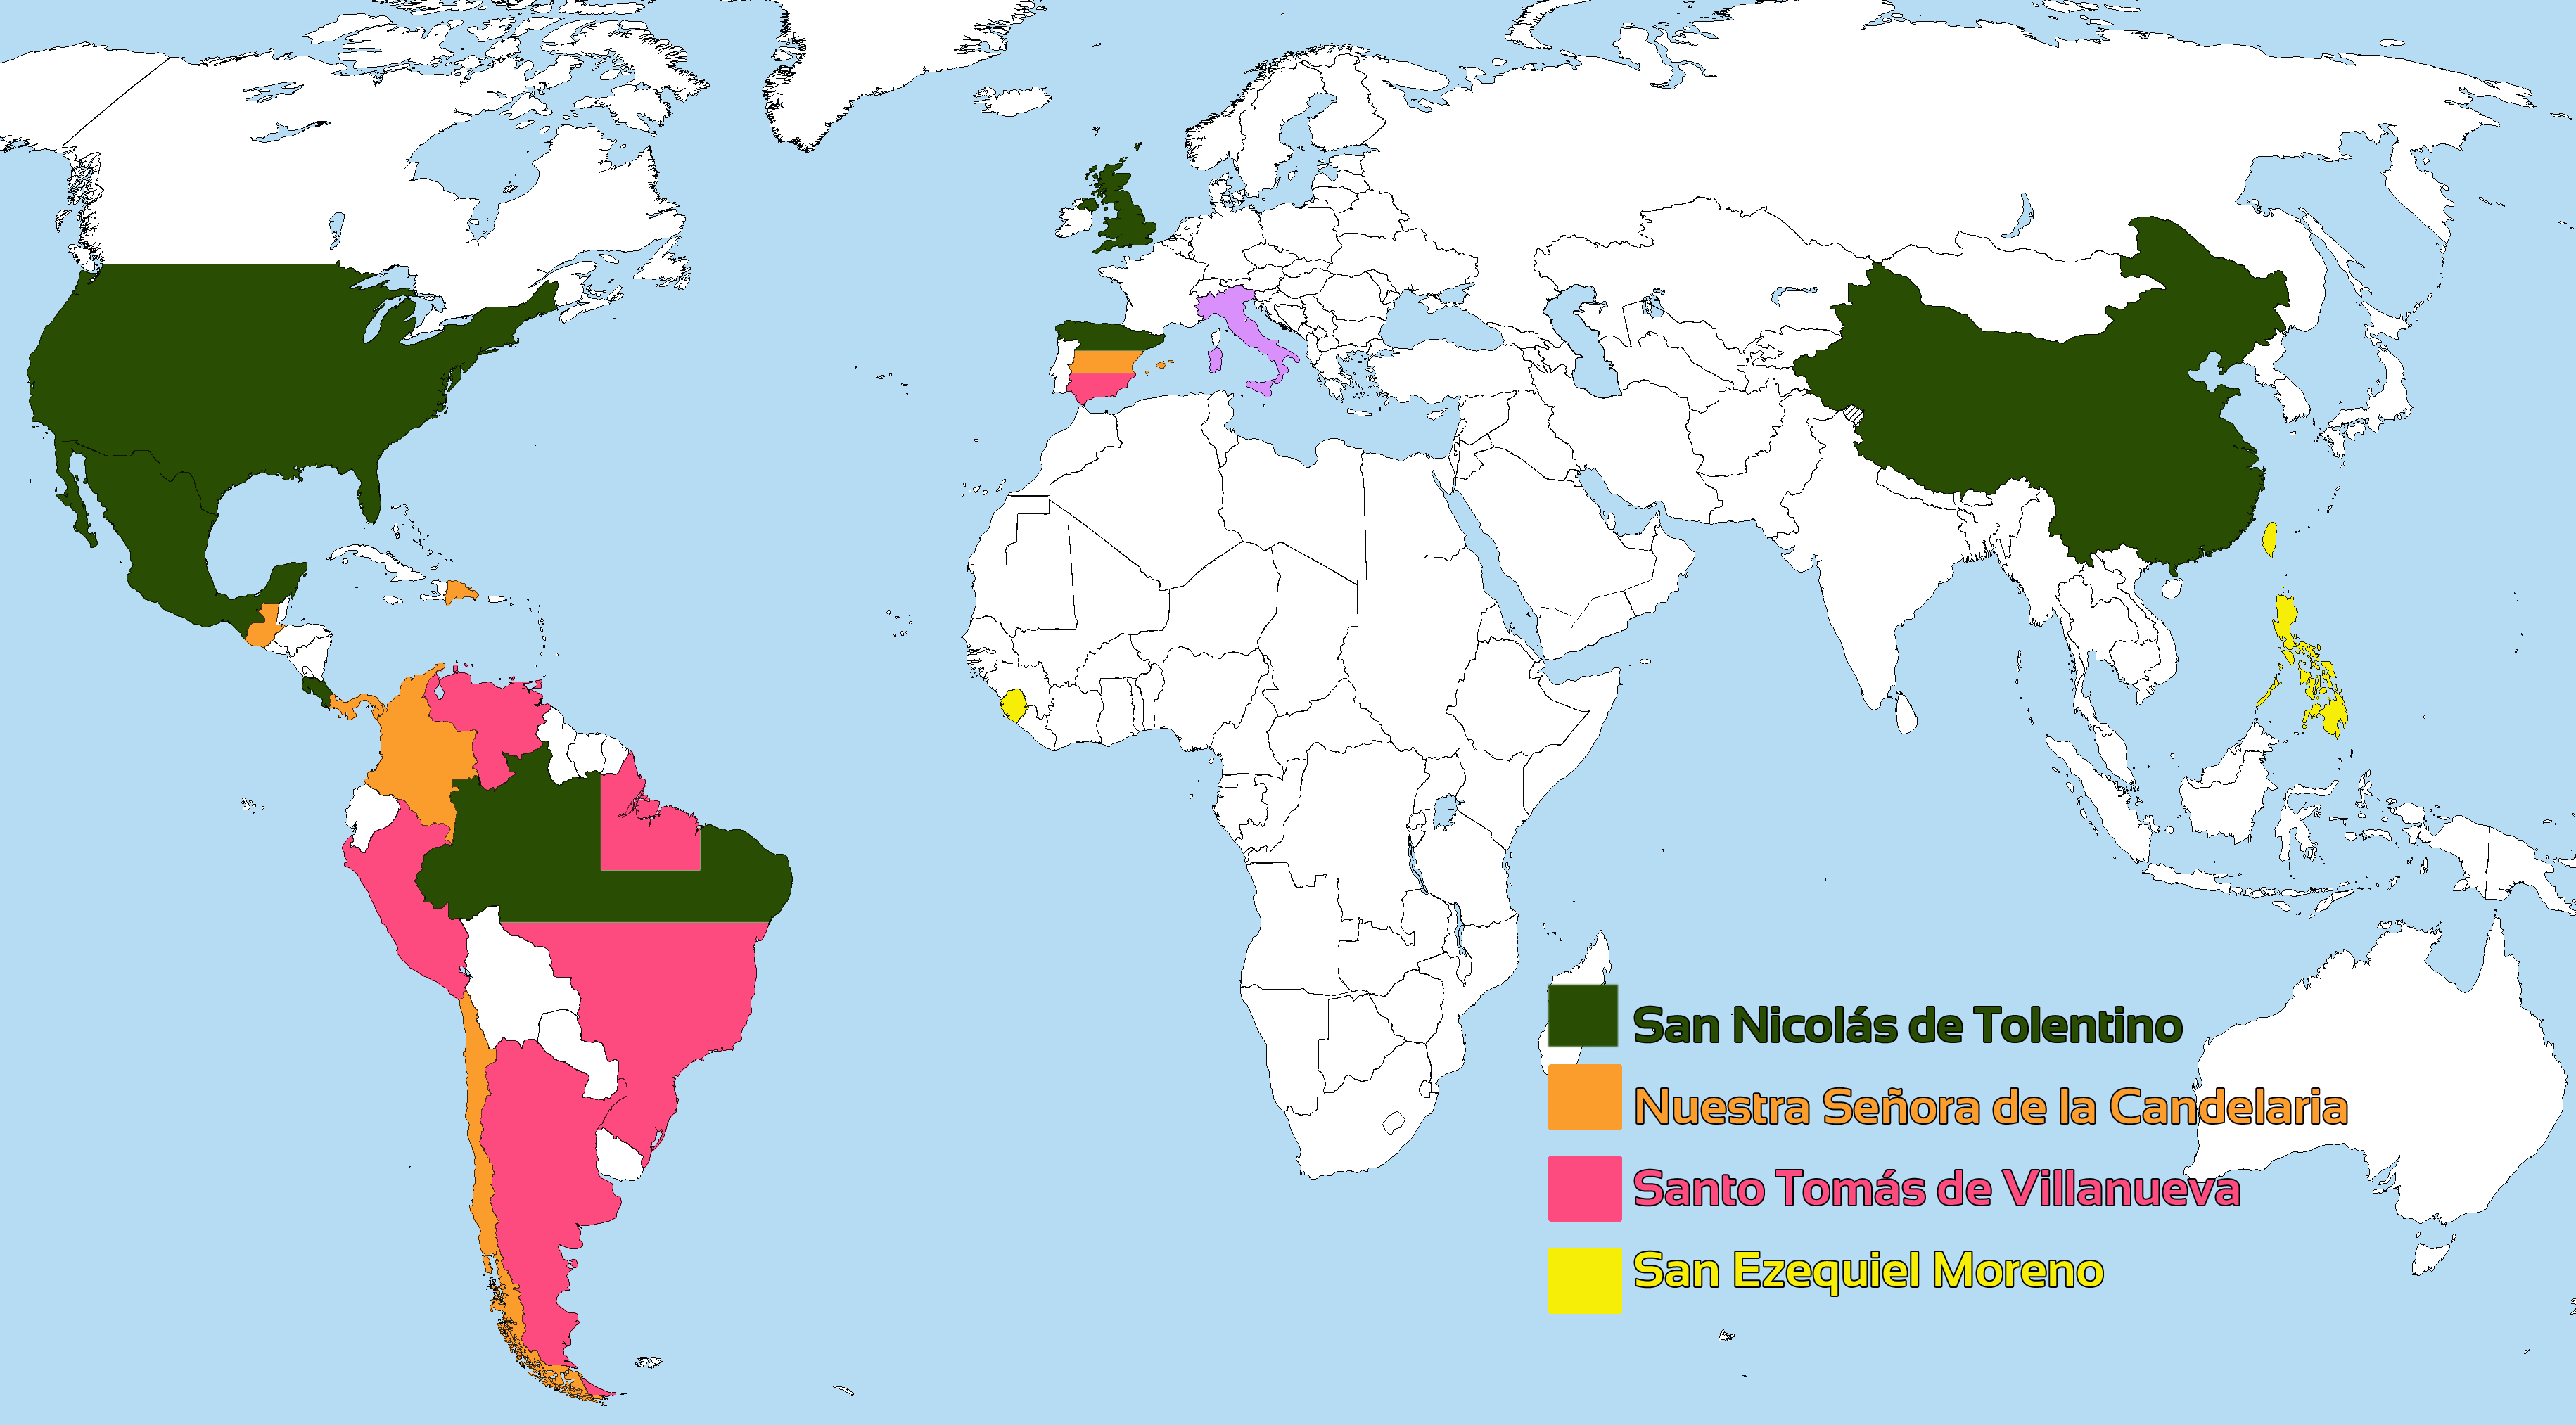 Presence of the Order of Augustinian Recollects in the world, and its component provinces.